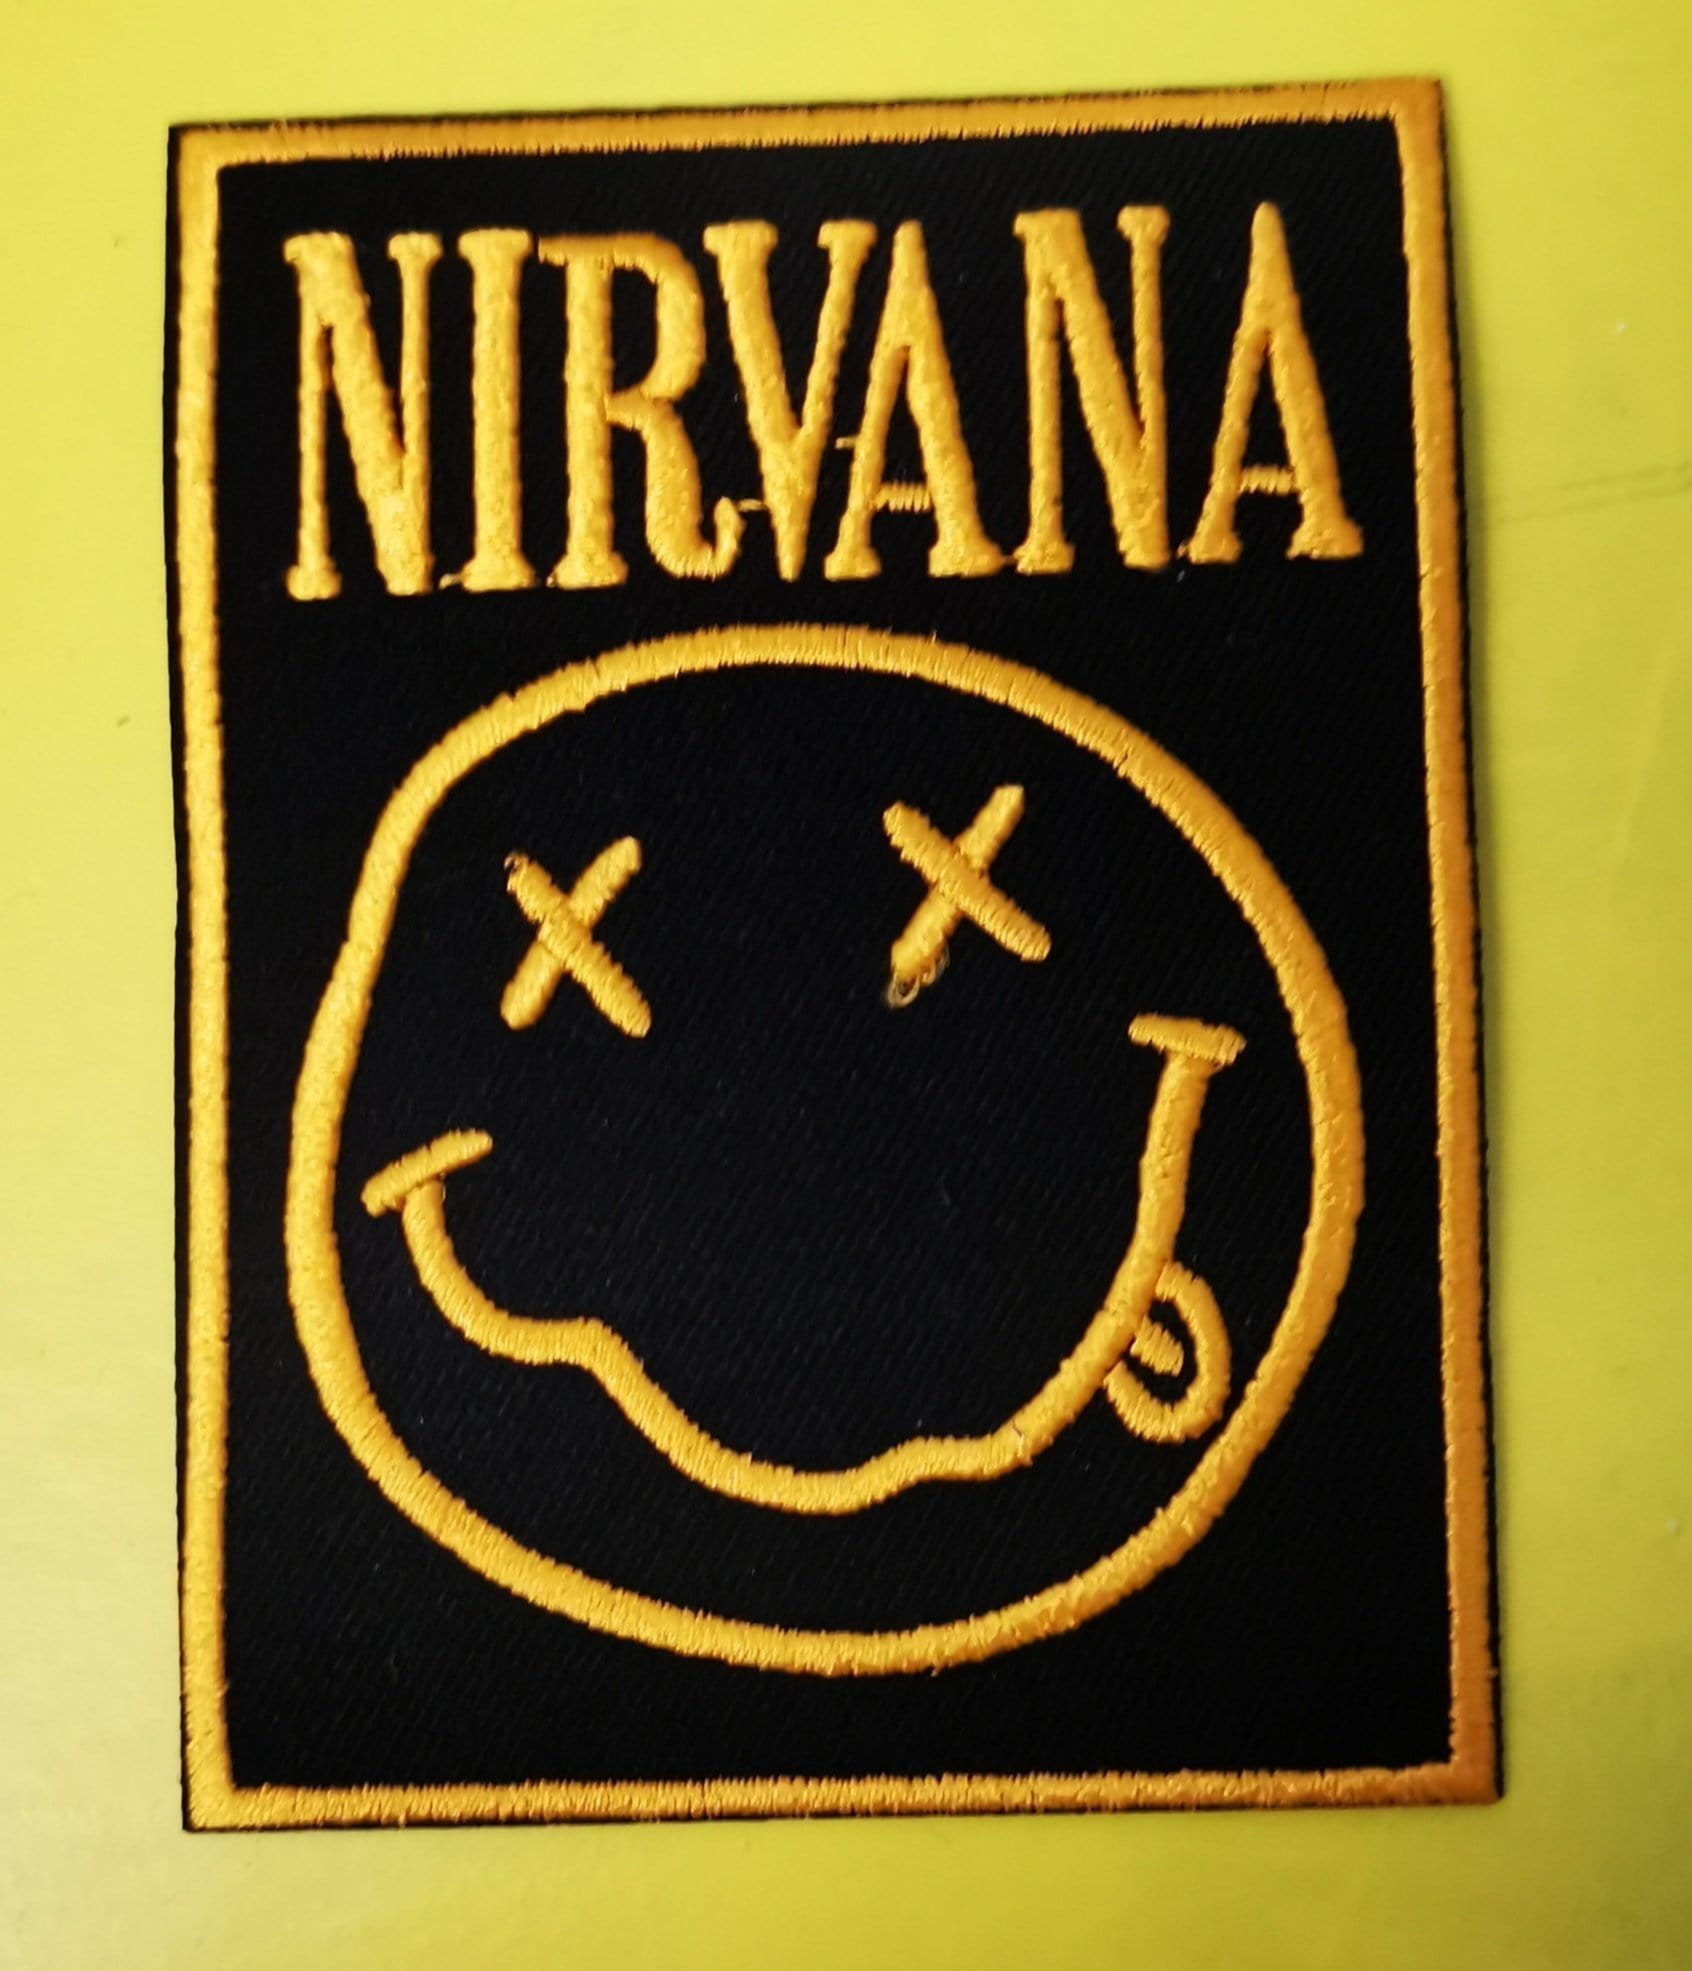 Nirvana Square Yellow border Embroidered Iron on Patch